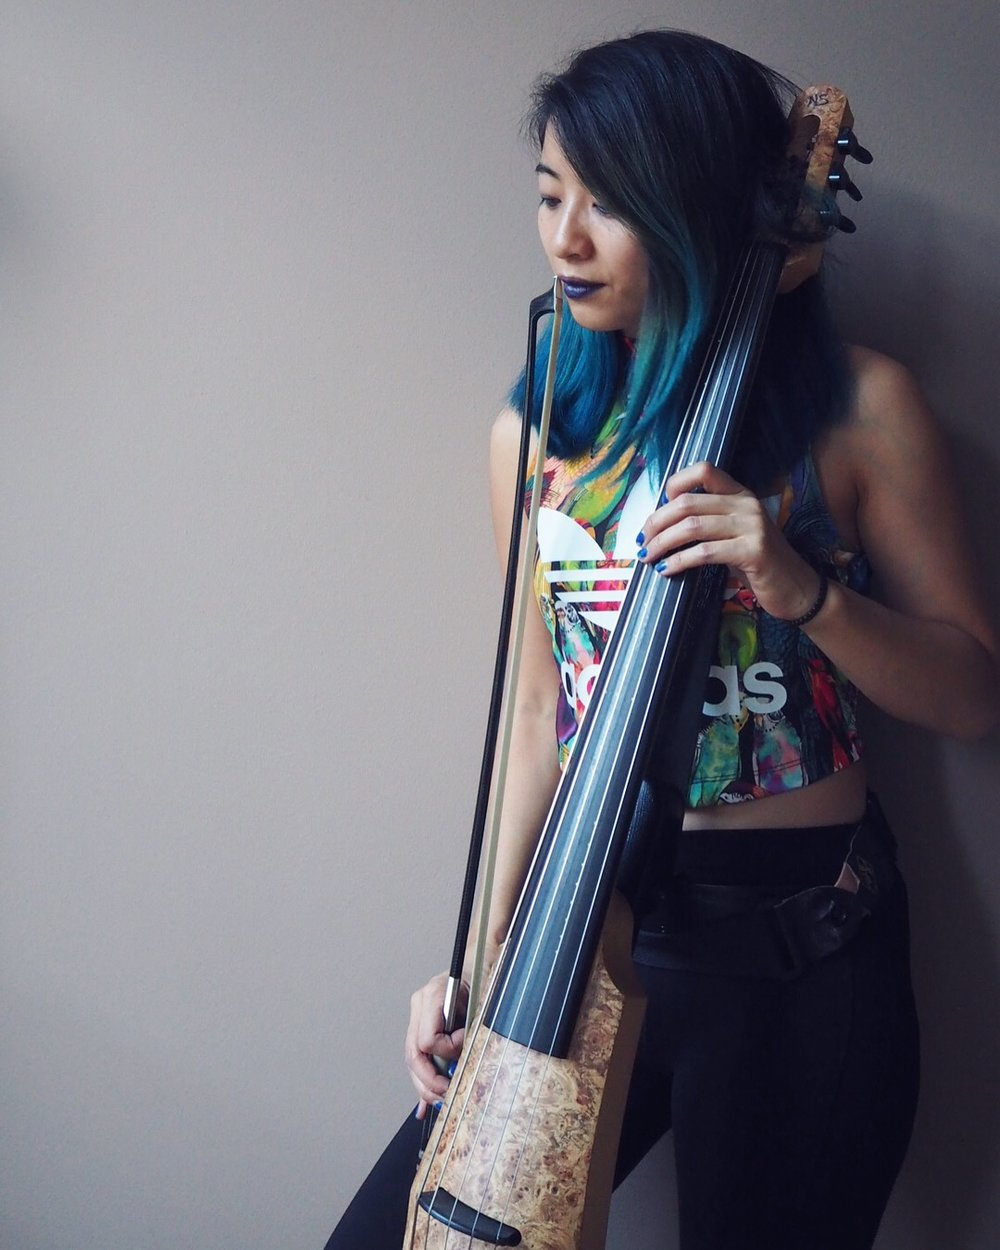 The-Wong-Janice-music-producer-electric-cellist-Amsterdam-ns-design-CR5-cello.jpg